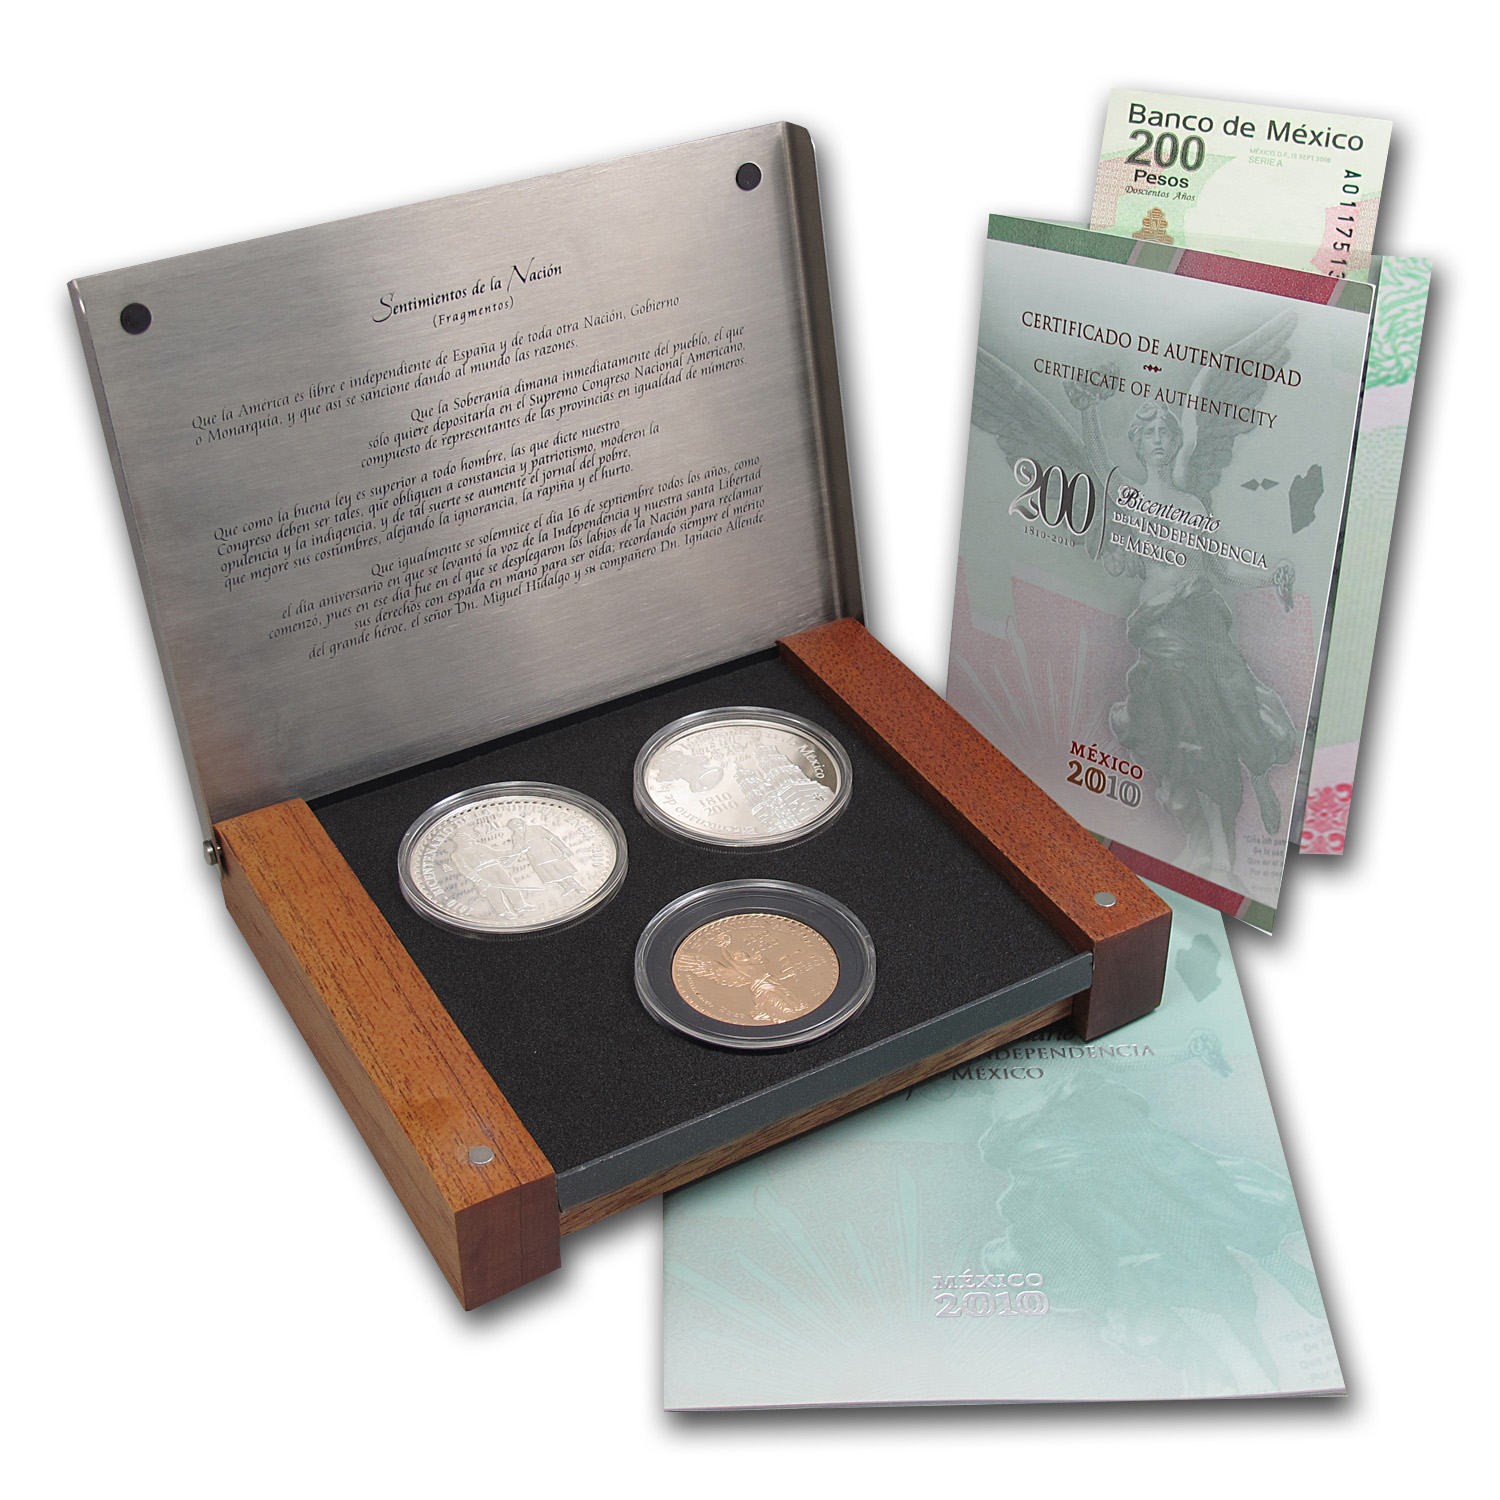 2010 Mexico 3-Coin Prestige Proof Set (1.2057 oz AGW, 4 oz ASW)